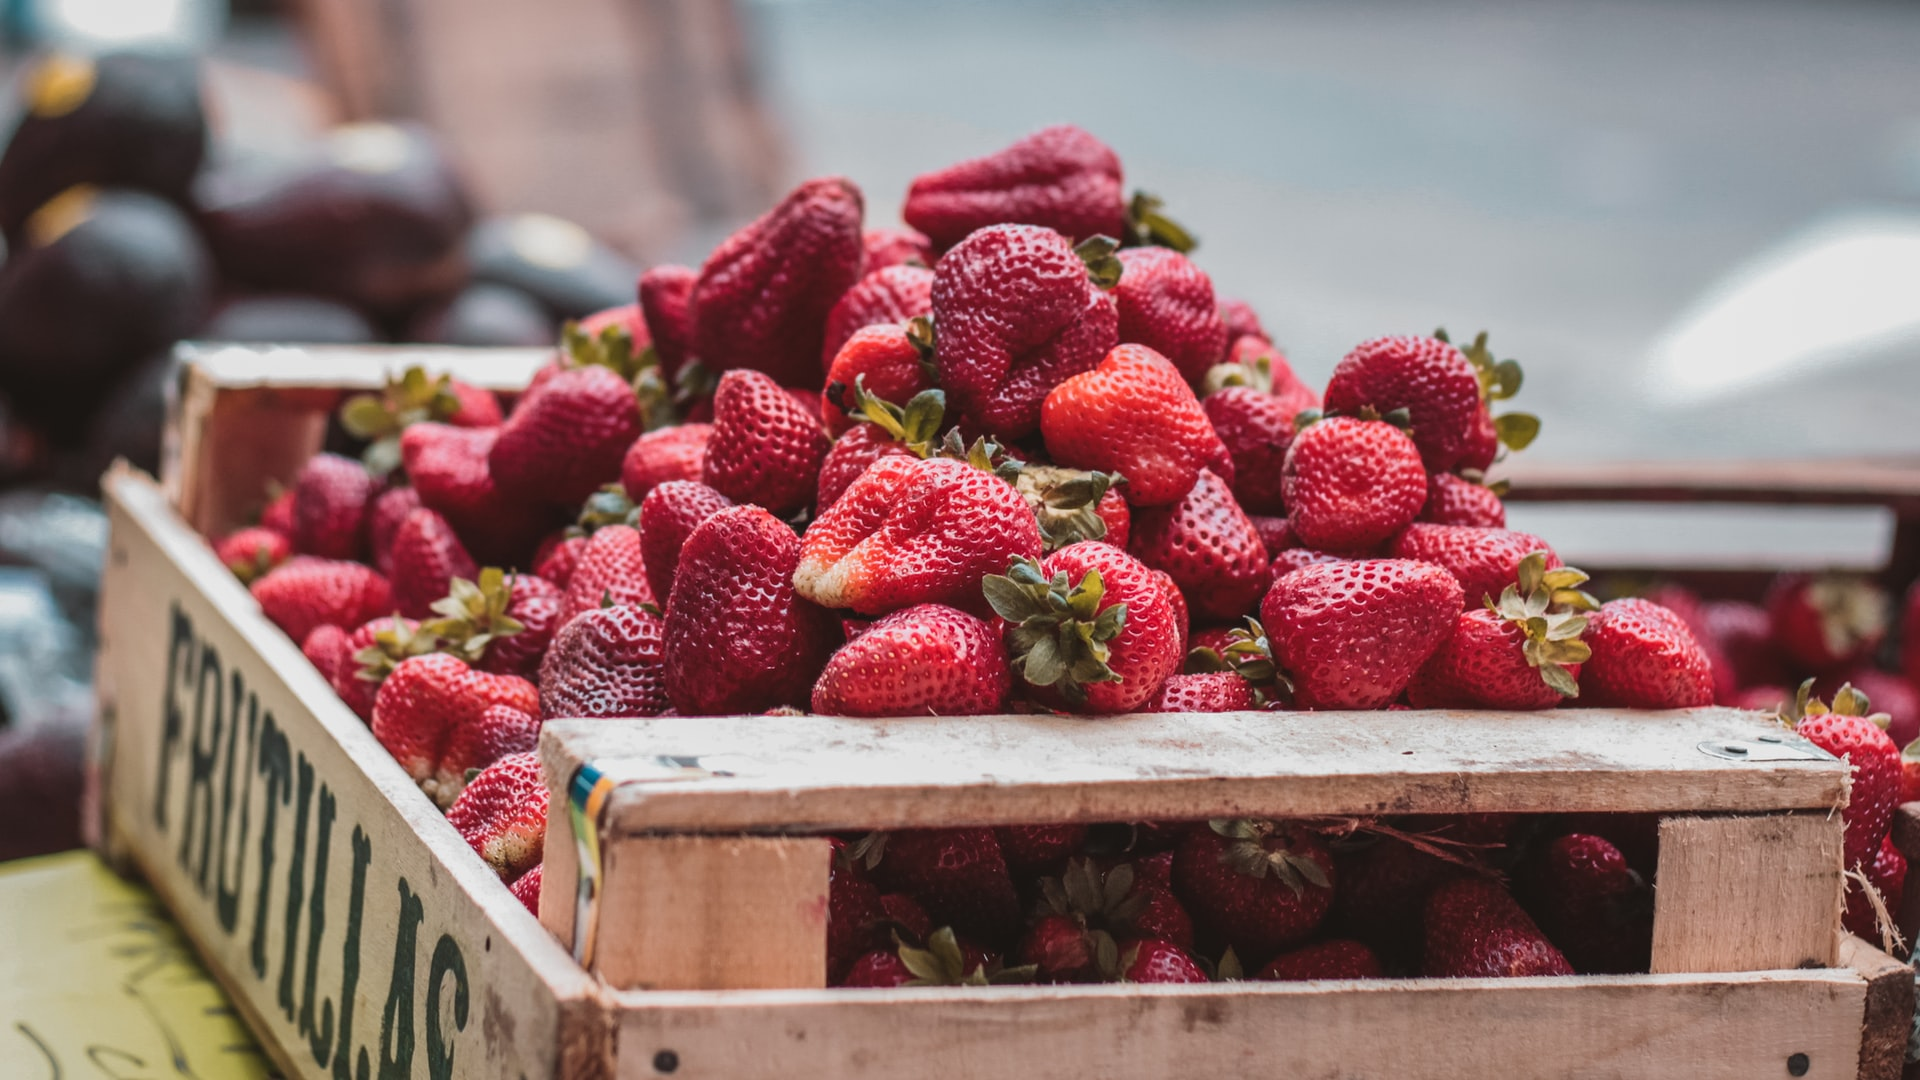 Find Seasonal Produce at the Columbia Heights Farmers Market